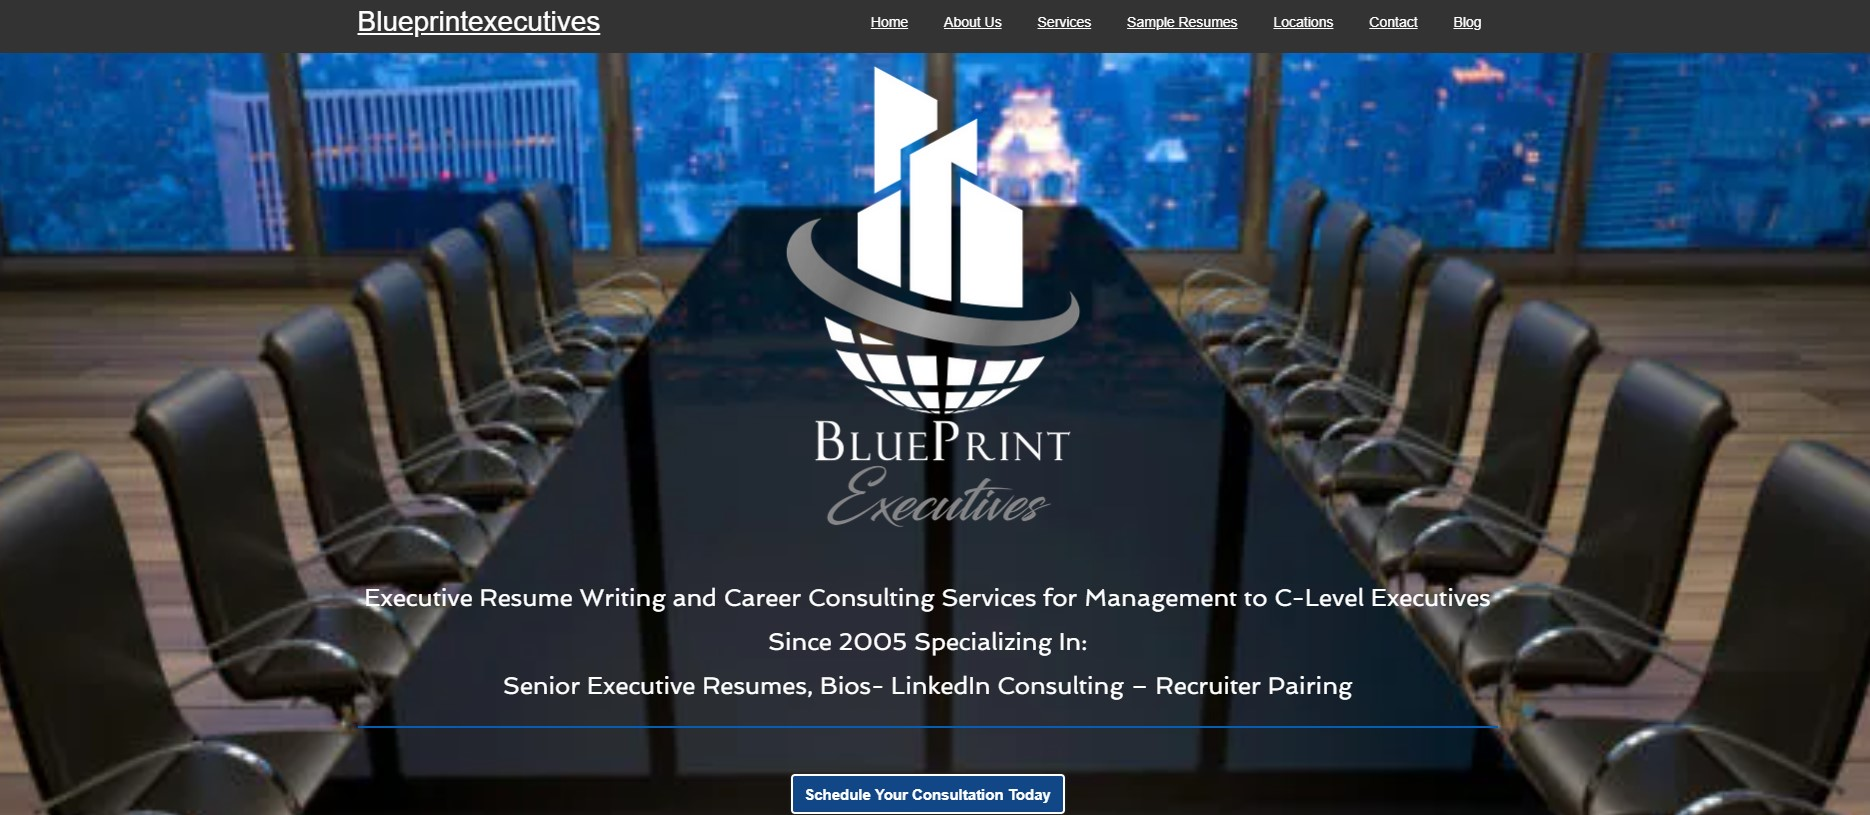 10 Best Resume Writers - screenshot of BluePrint Executives' homepage